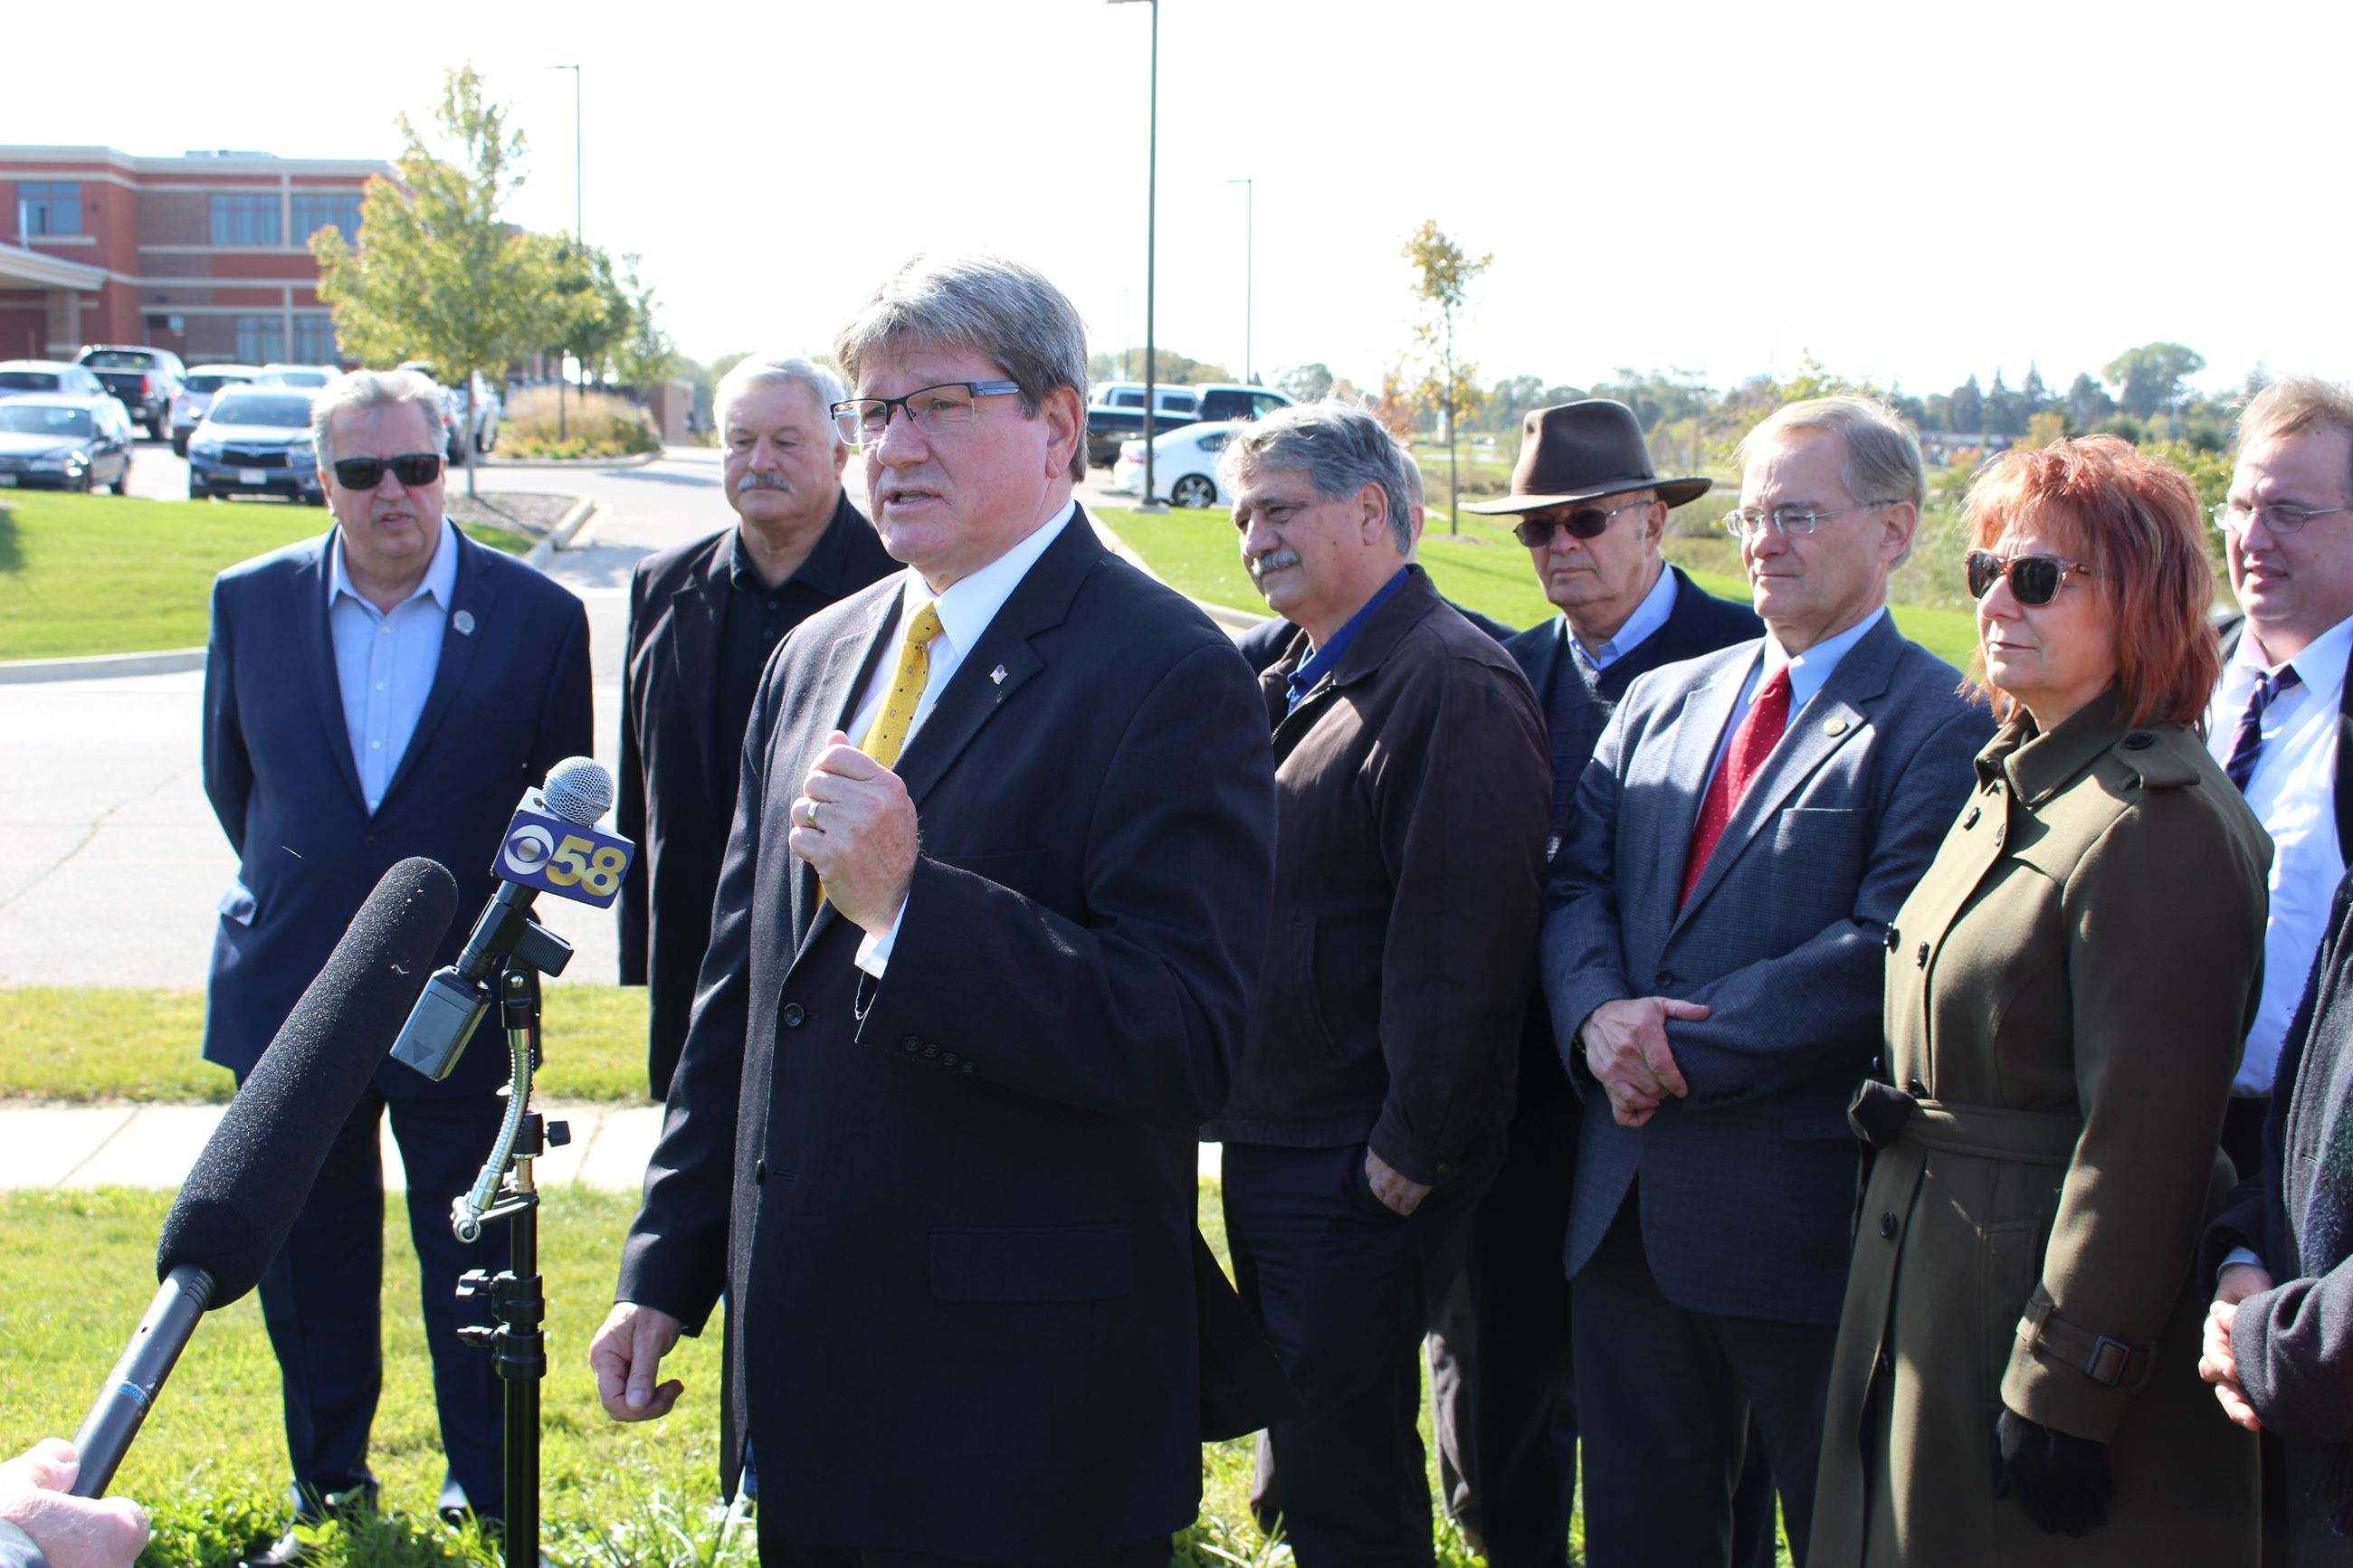 County Executive Jim Kreuser speaking at dark stores news conference